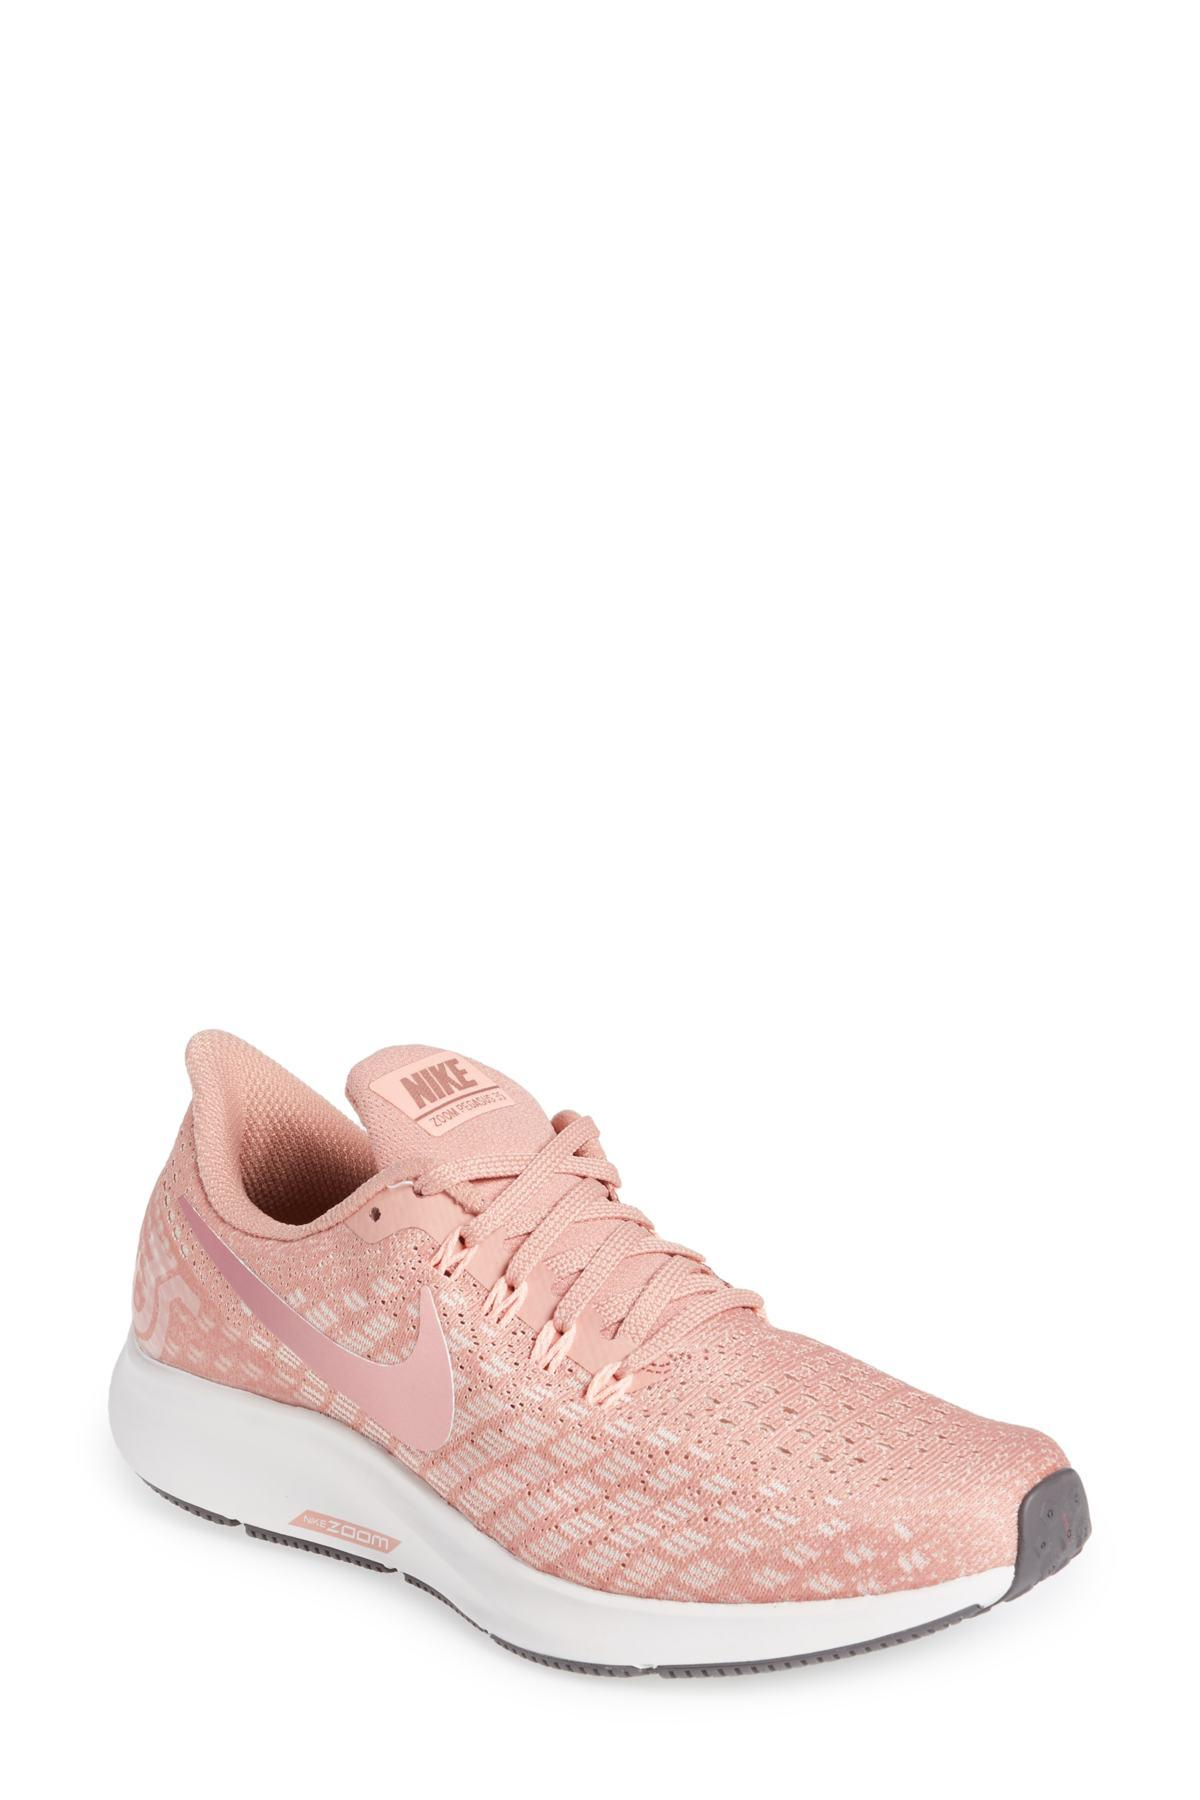 6e344960aa9c Lyst - Nike Air Zoom Pegasus 35 W Women s Running Trainers In Pink ...